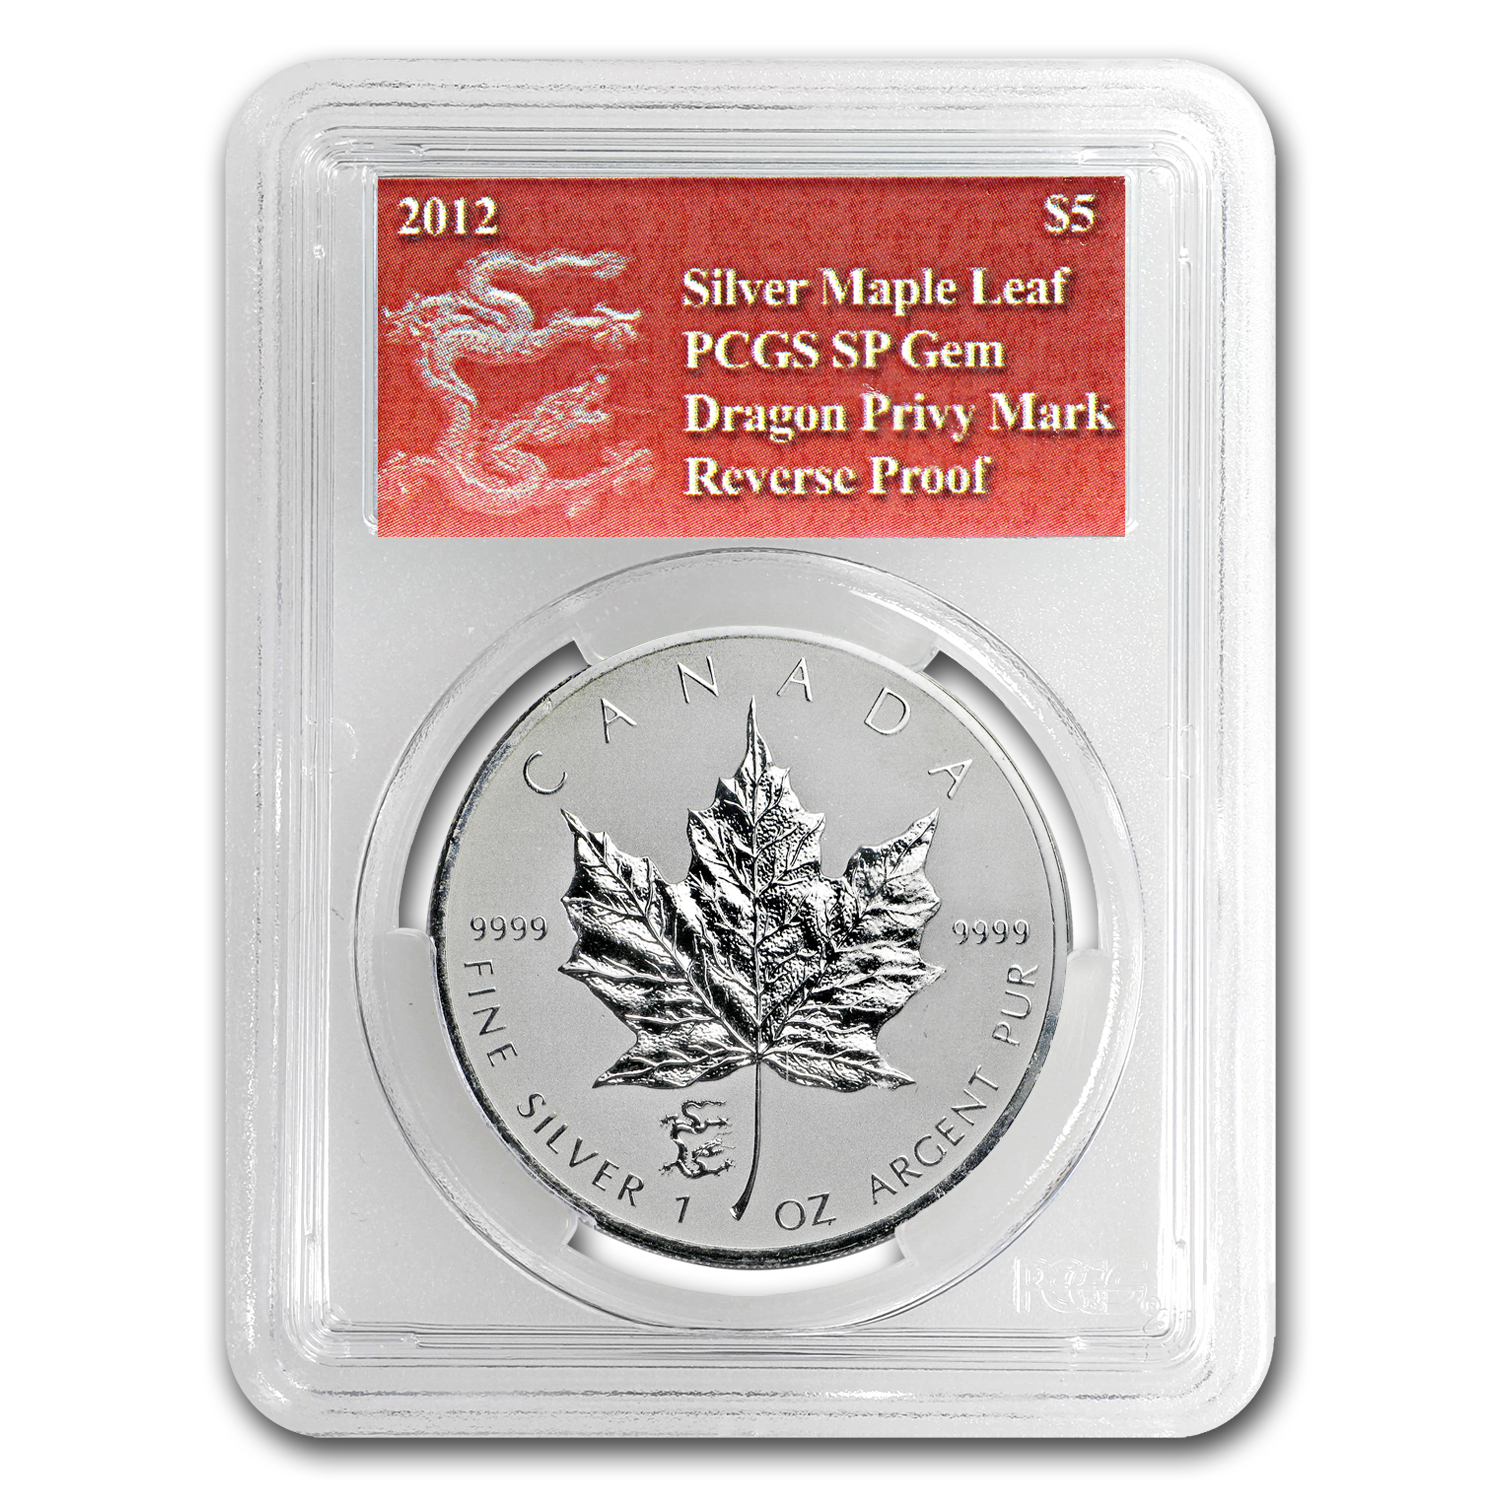 2012 Canada 1 oz Silver Maple Leaf Dragon Privy SP GEM PCGS